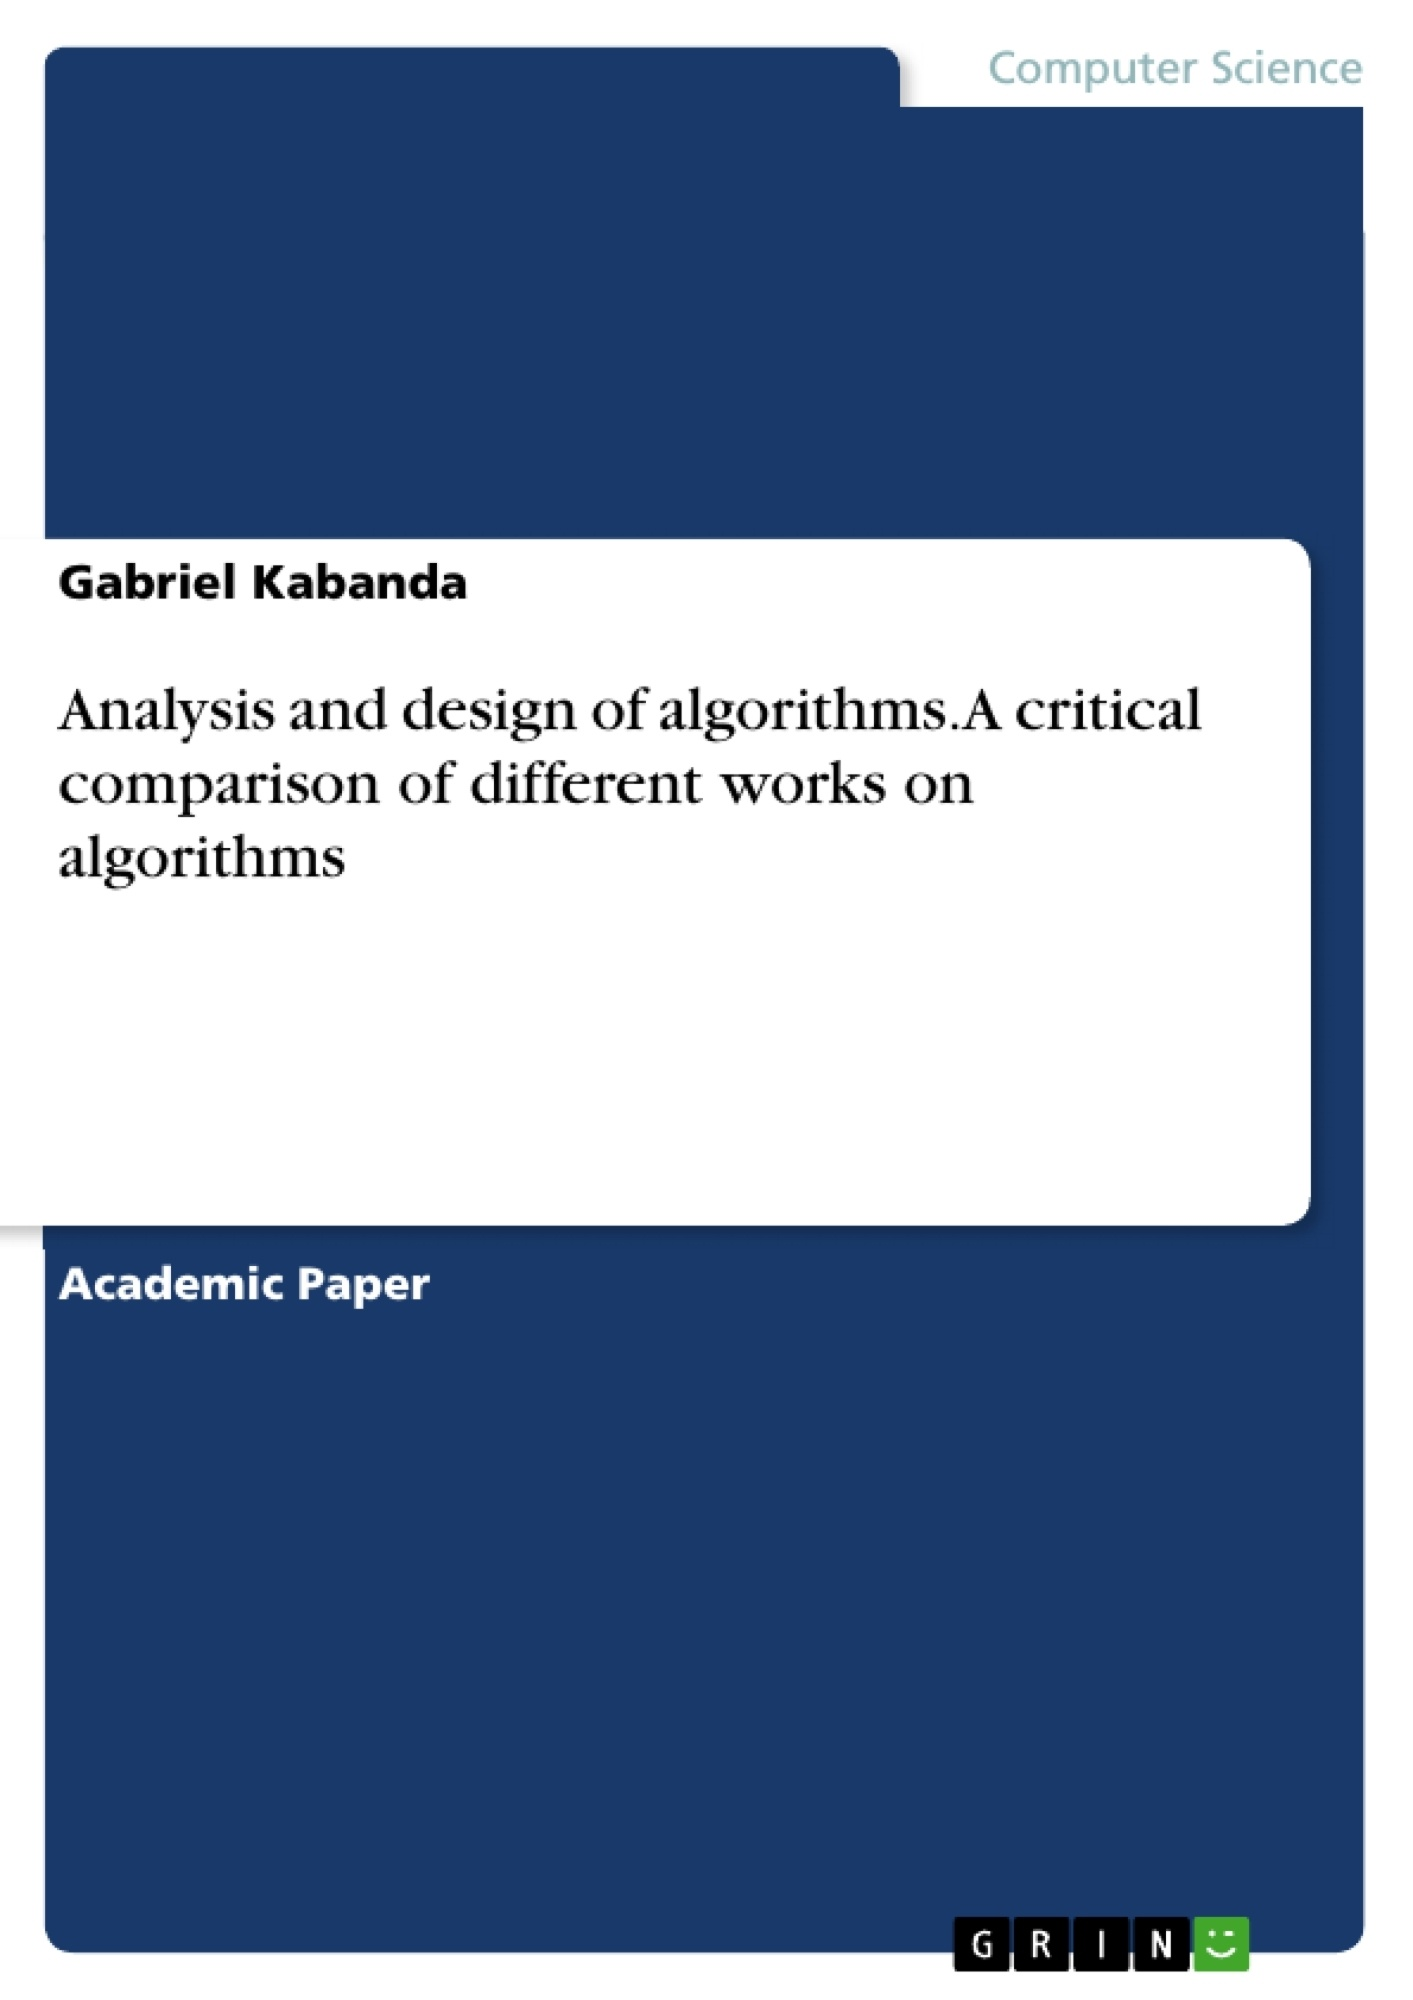 Title: Analysis and design of algorithms. A critical comparison of different works on algorithms